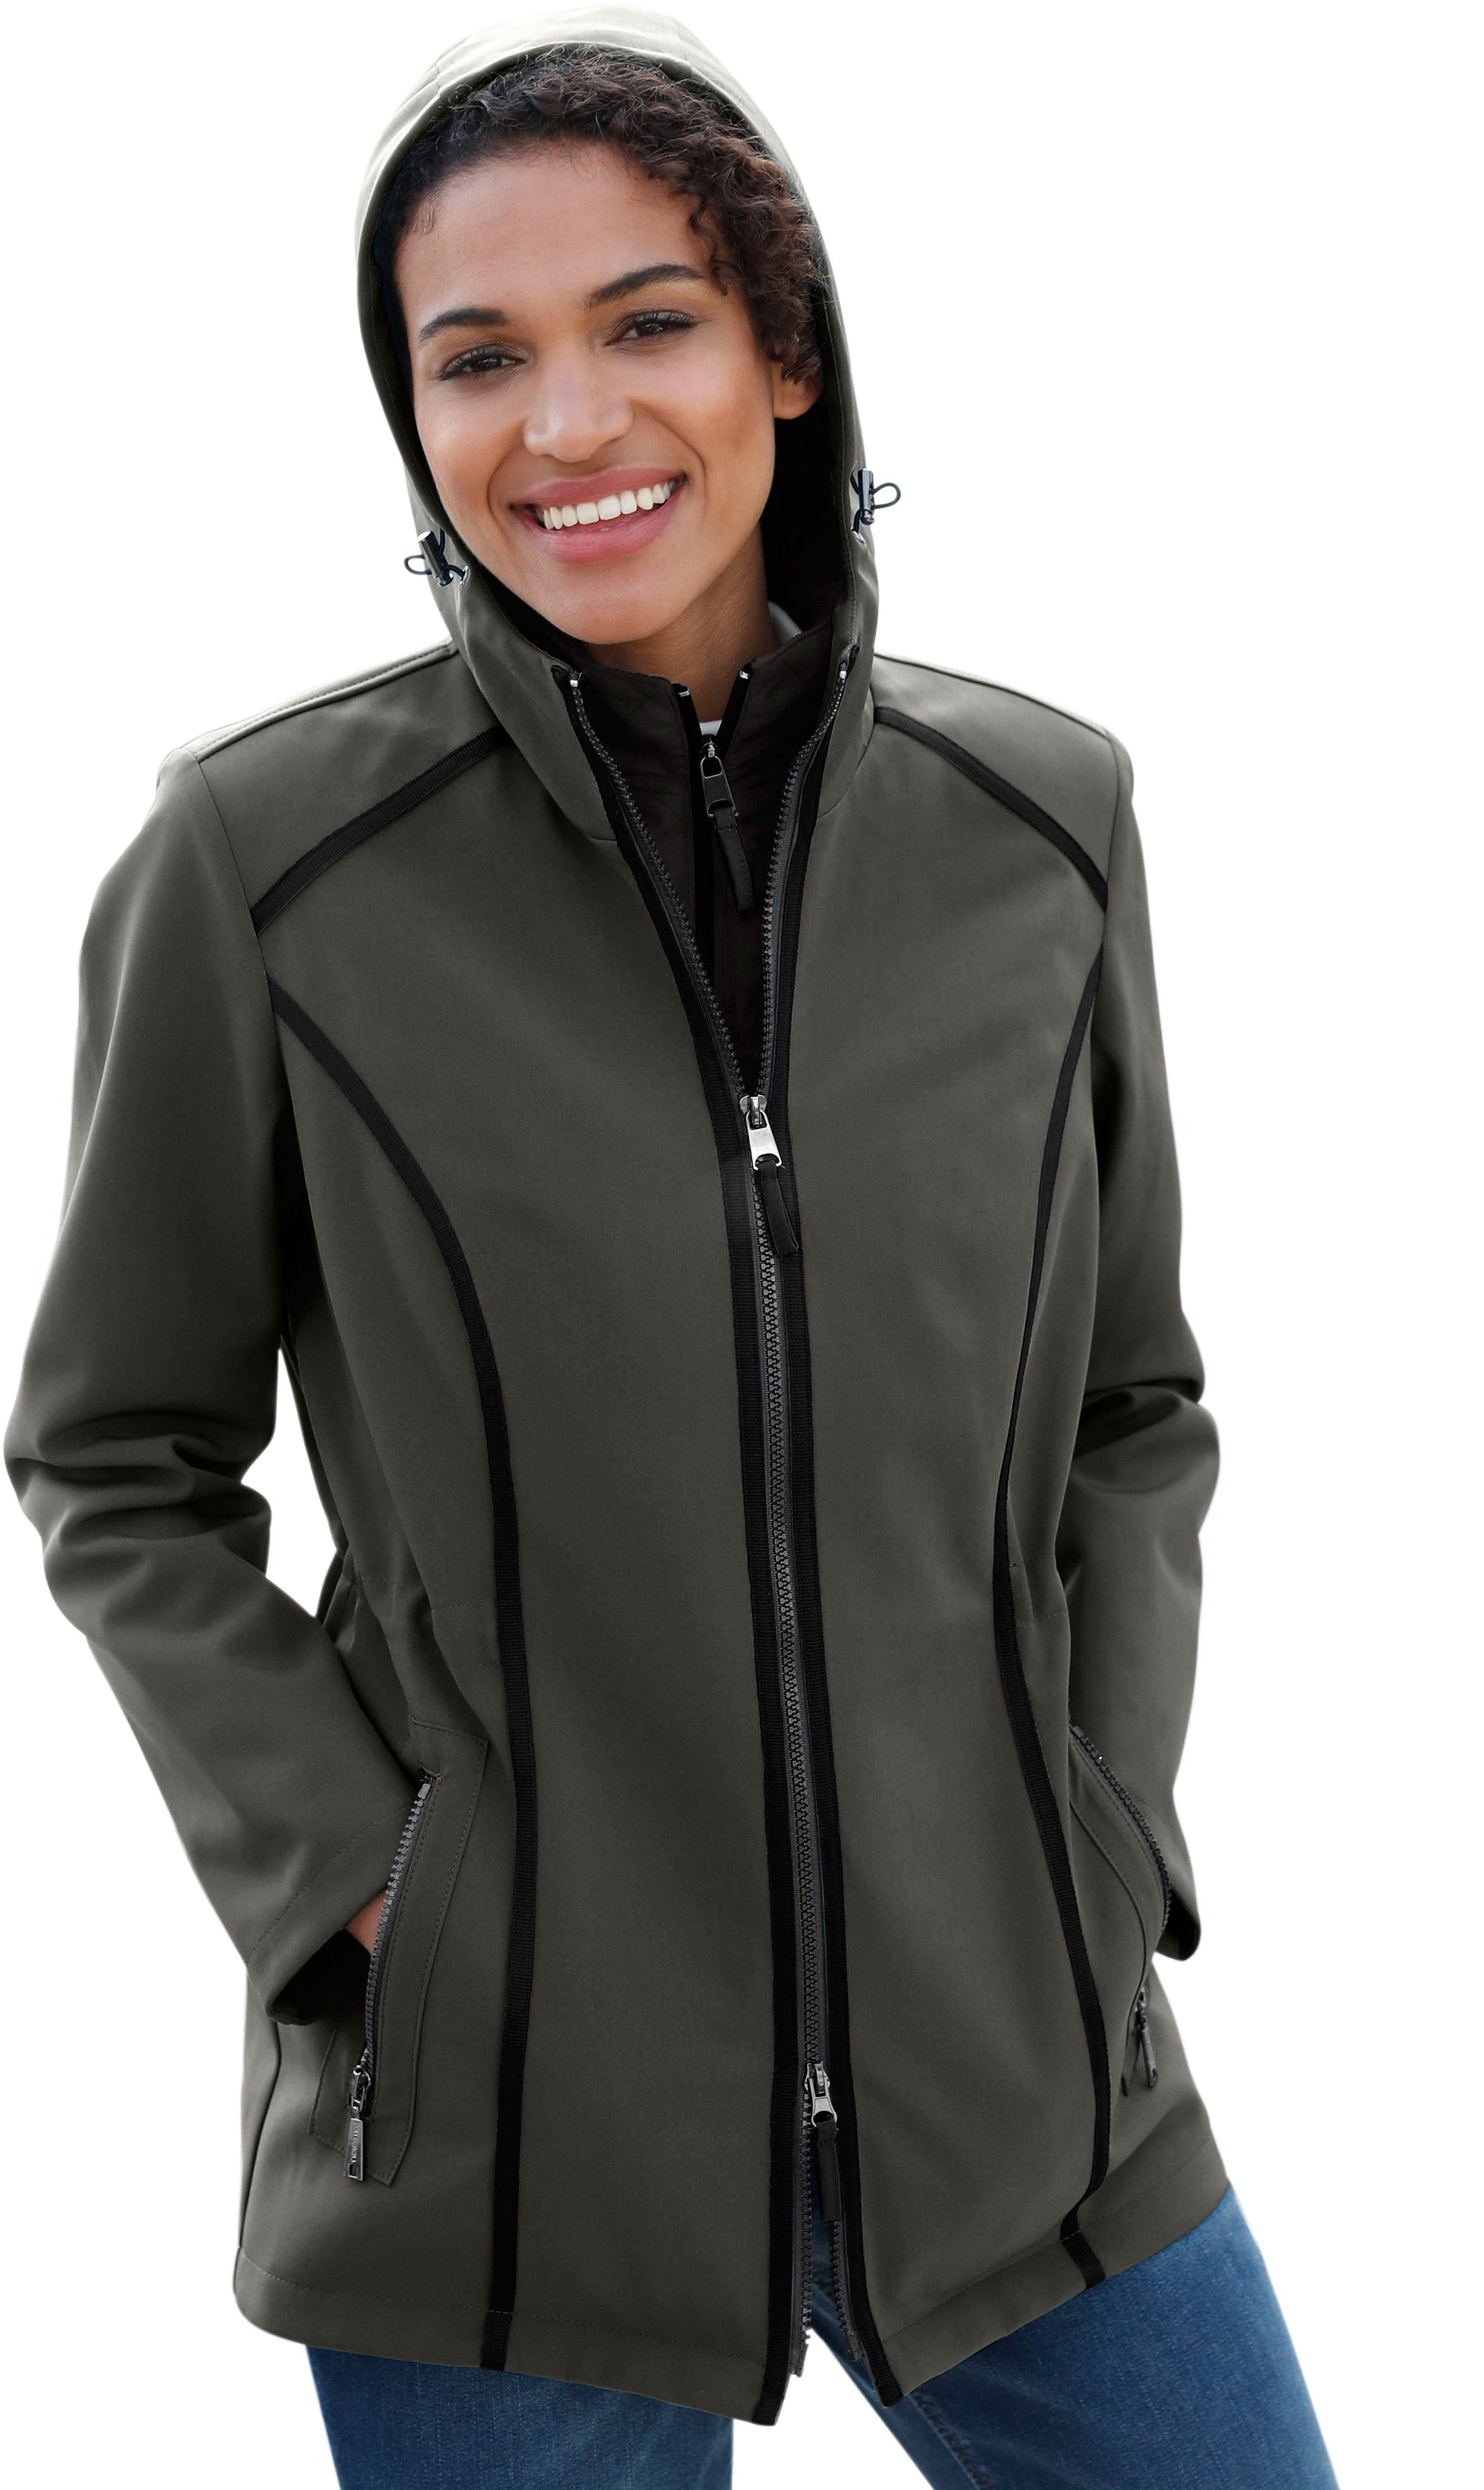 Casual Looks 2-in-1-Jacke aus Softshell